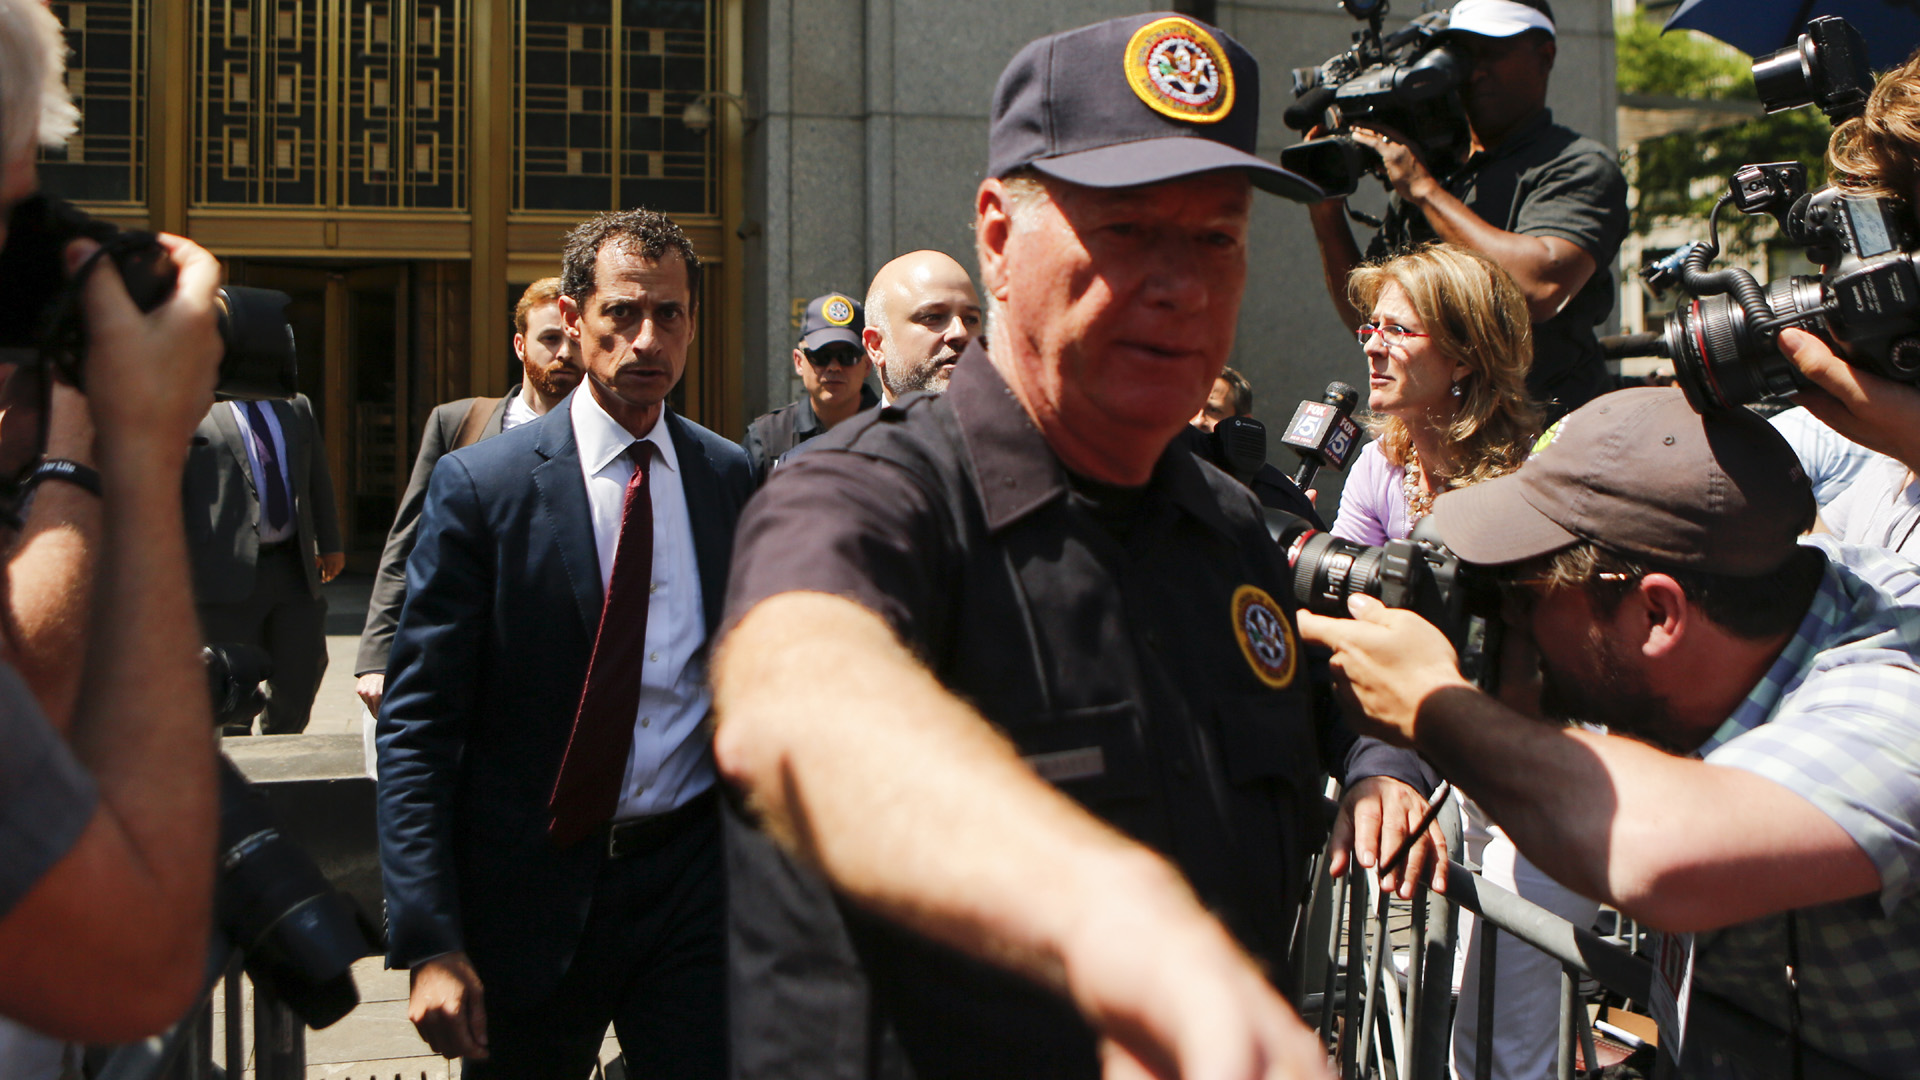 Anthony Weiner exiting courtroom after pleading guilty41700365-159532